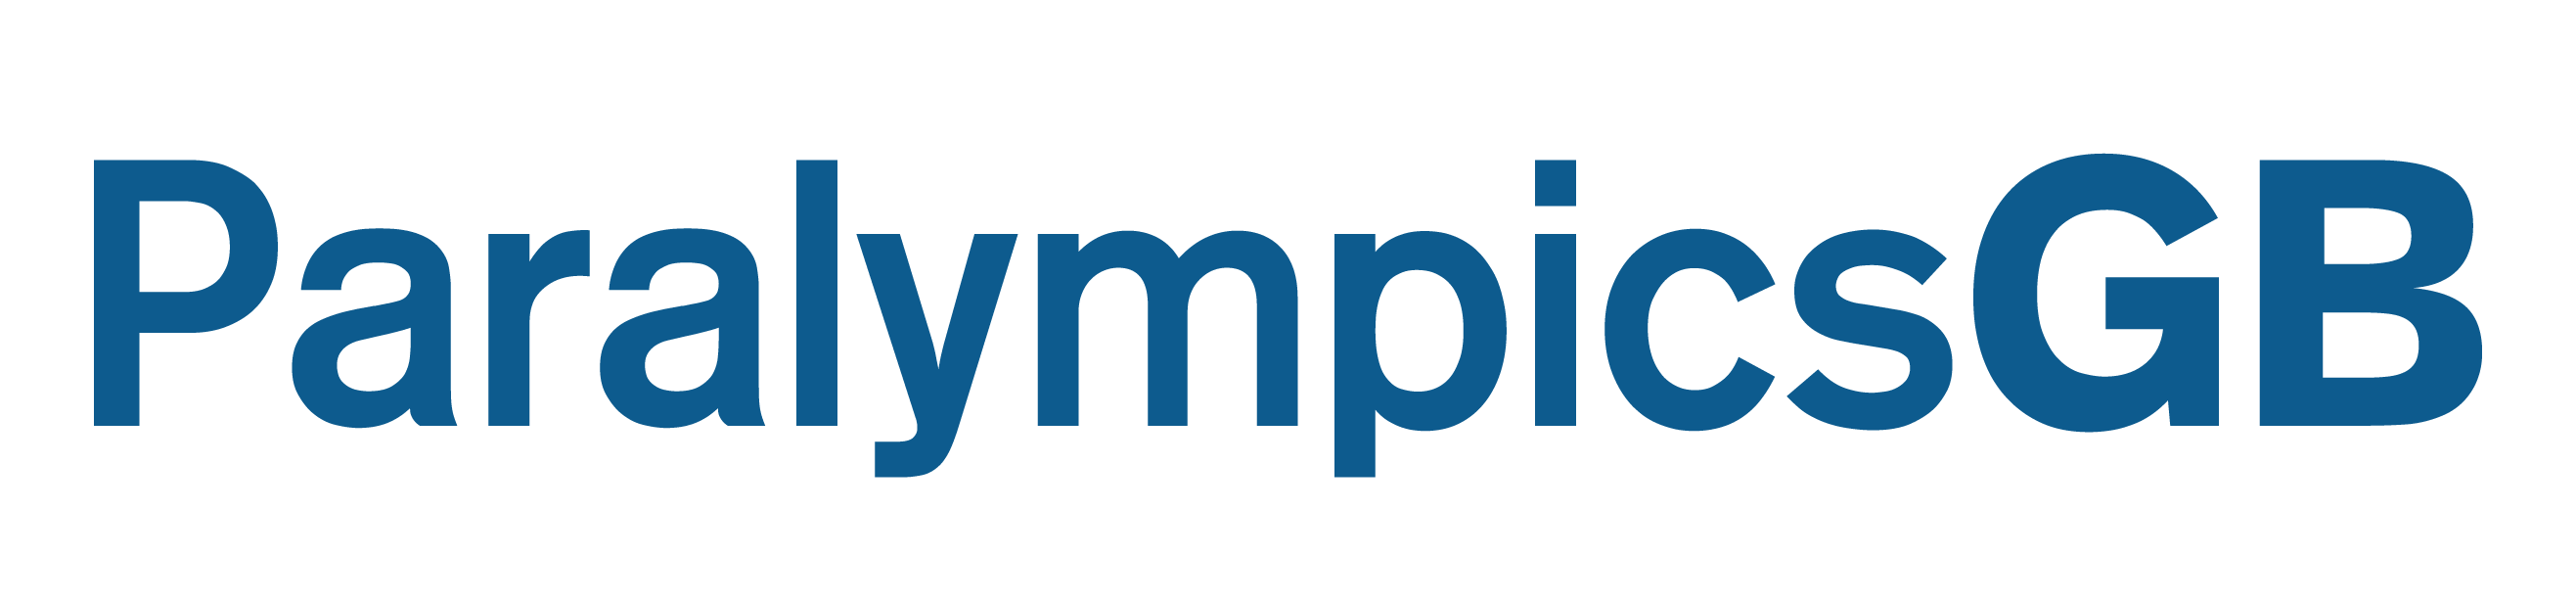 Go to 2020 Summer Paralympics, Tokyo (Rescheduled to 2021)